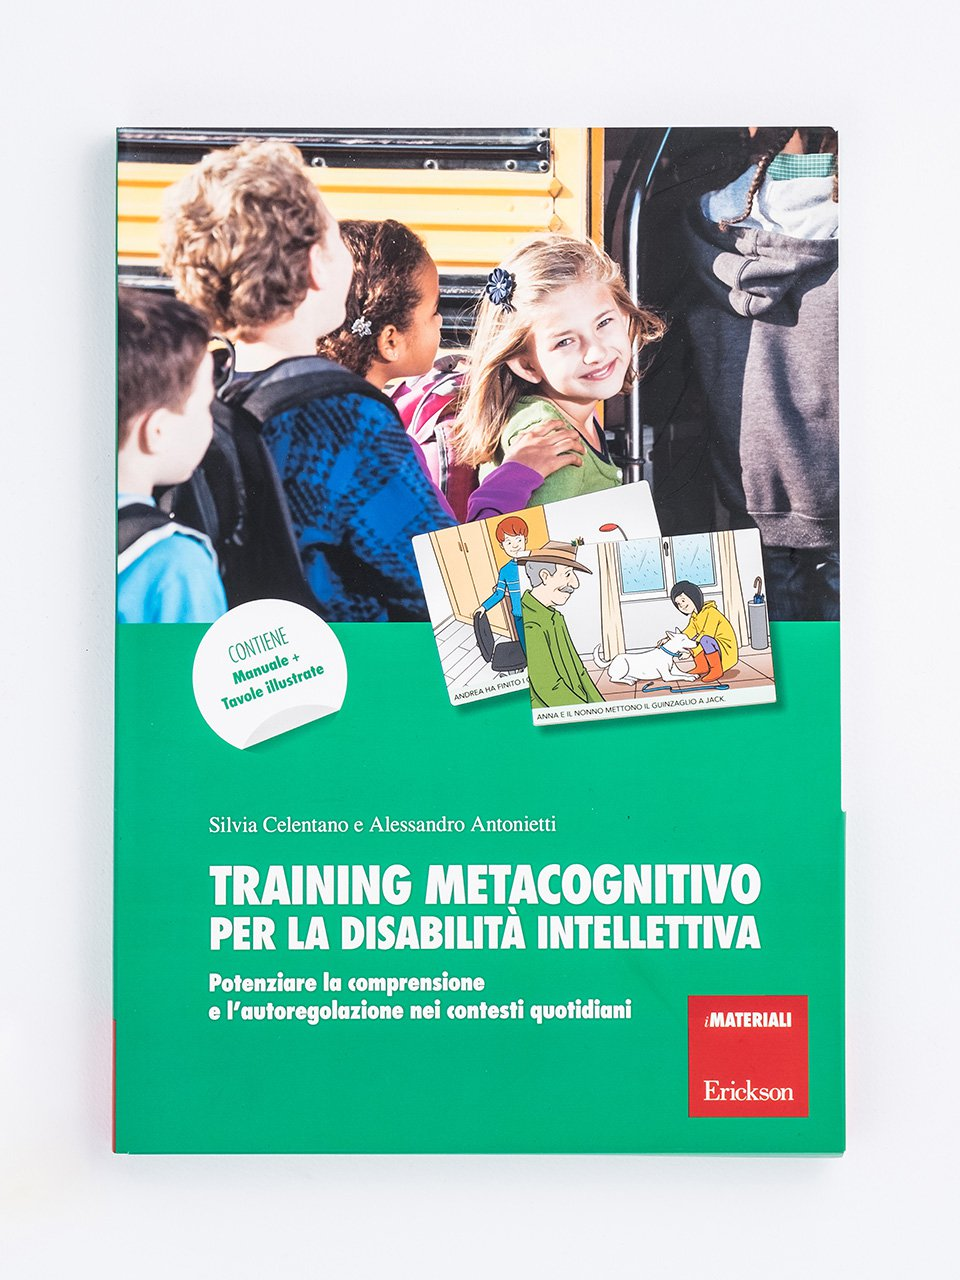 Training metacognitivo per la disabilità intellettiva - Tecniche base del metodo comportamentale - Libri - Erickson